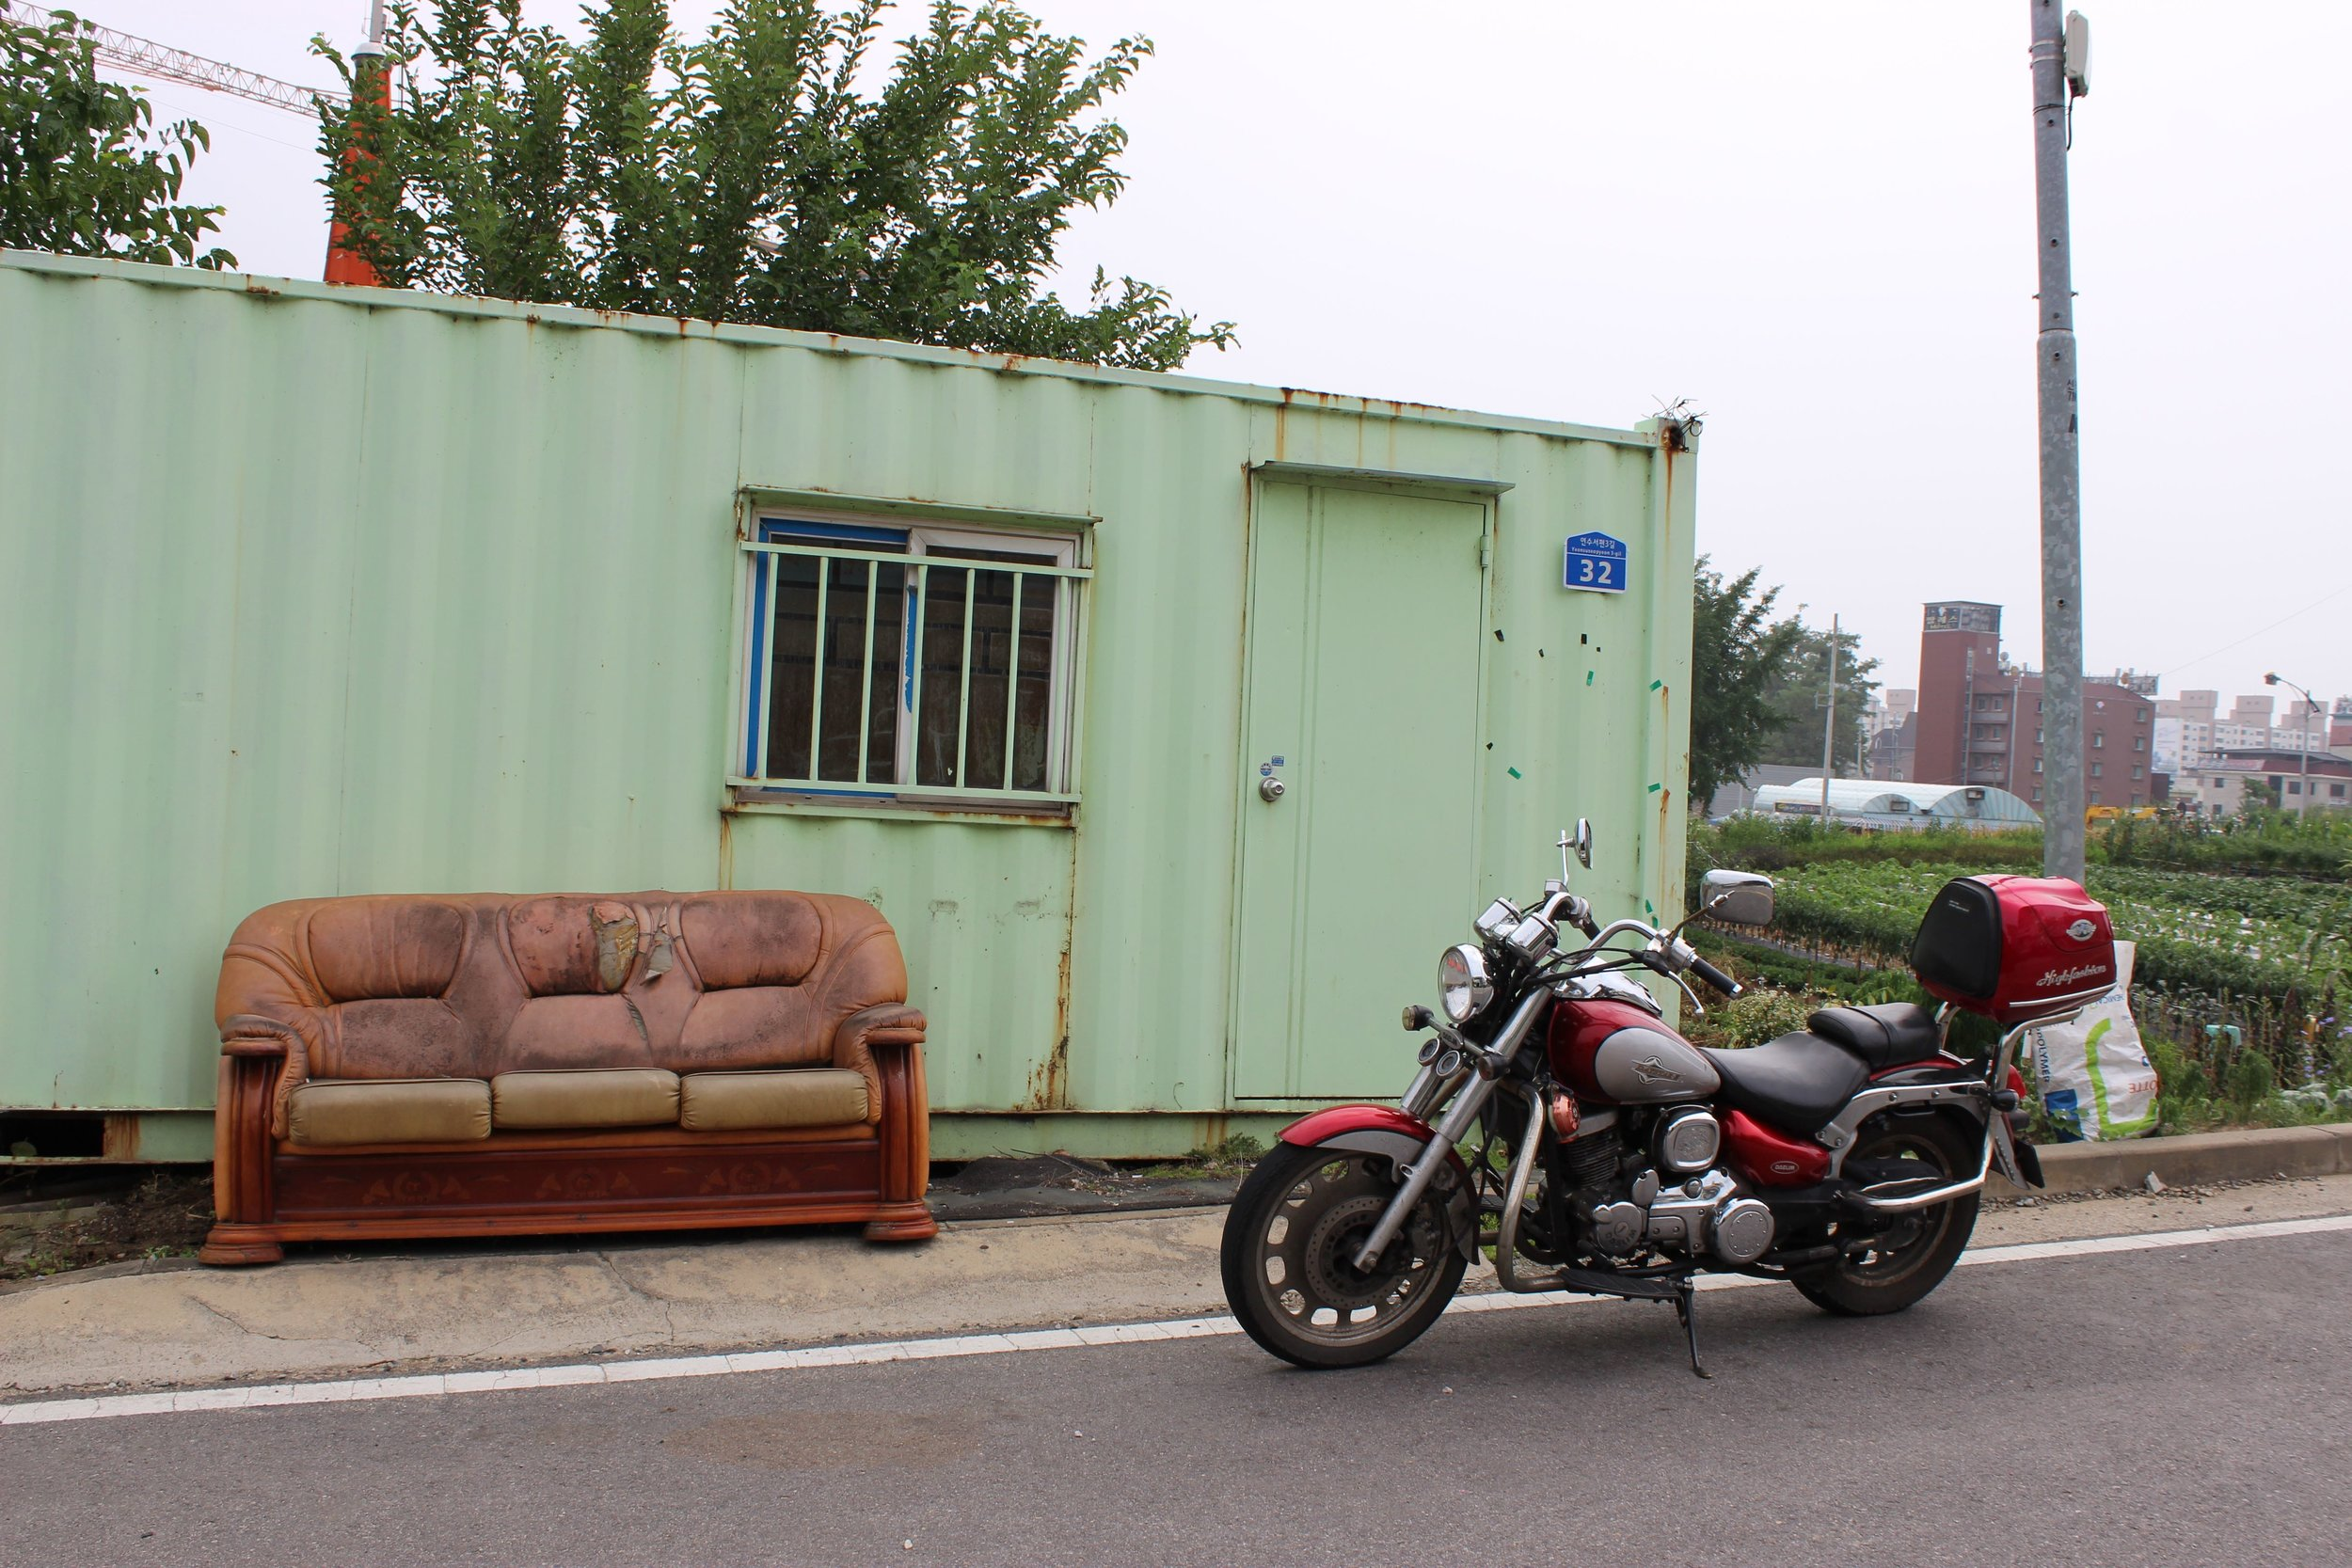 Container-couch.jpg